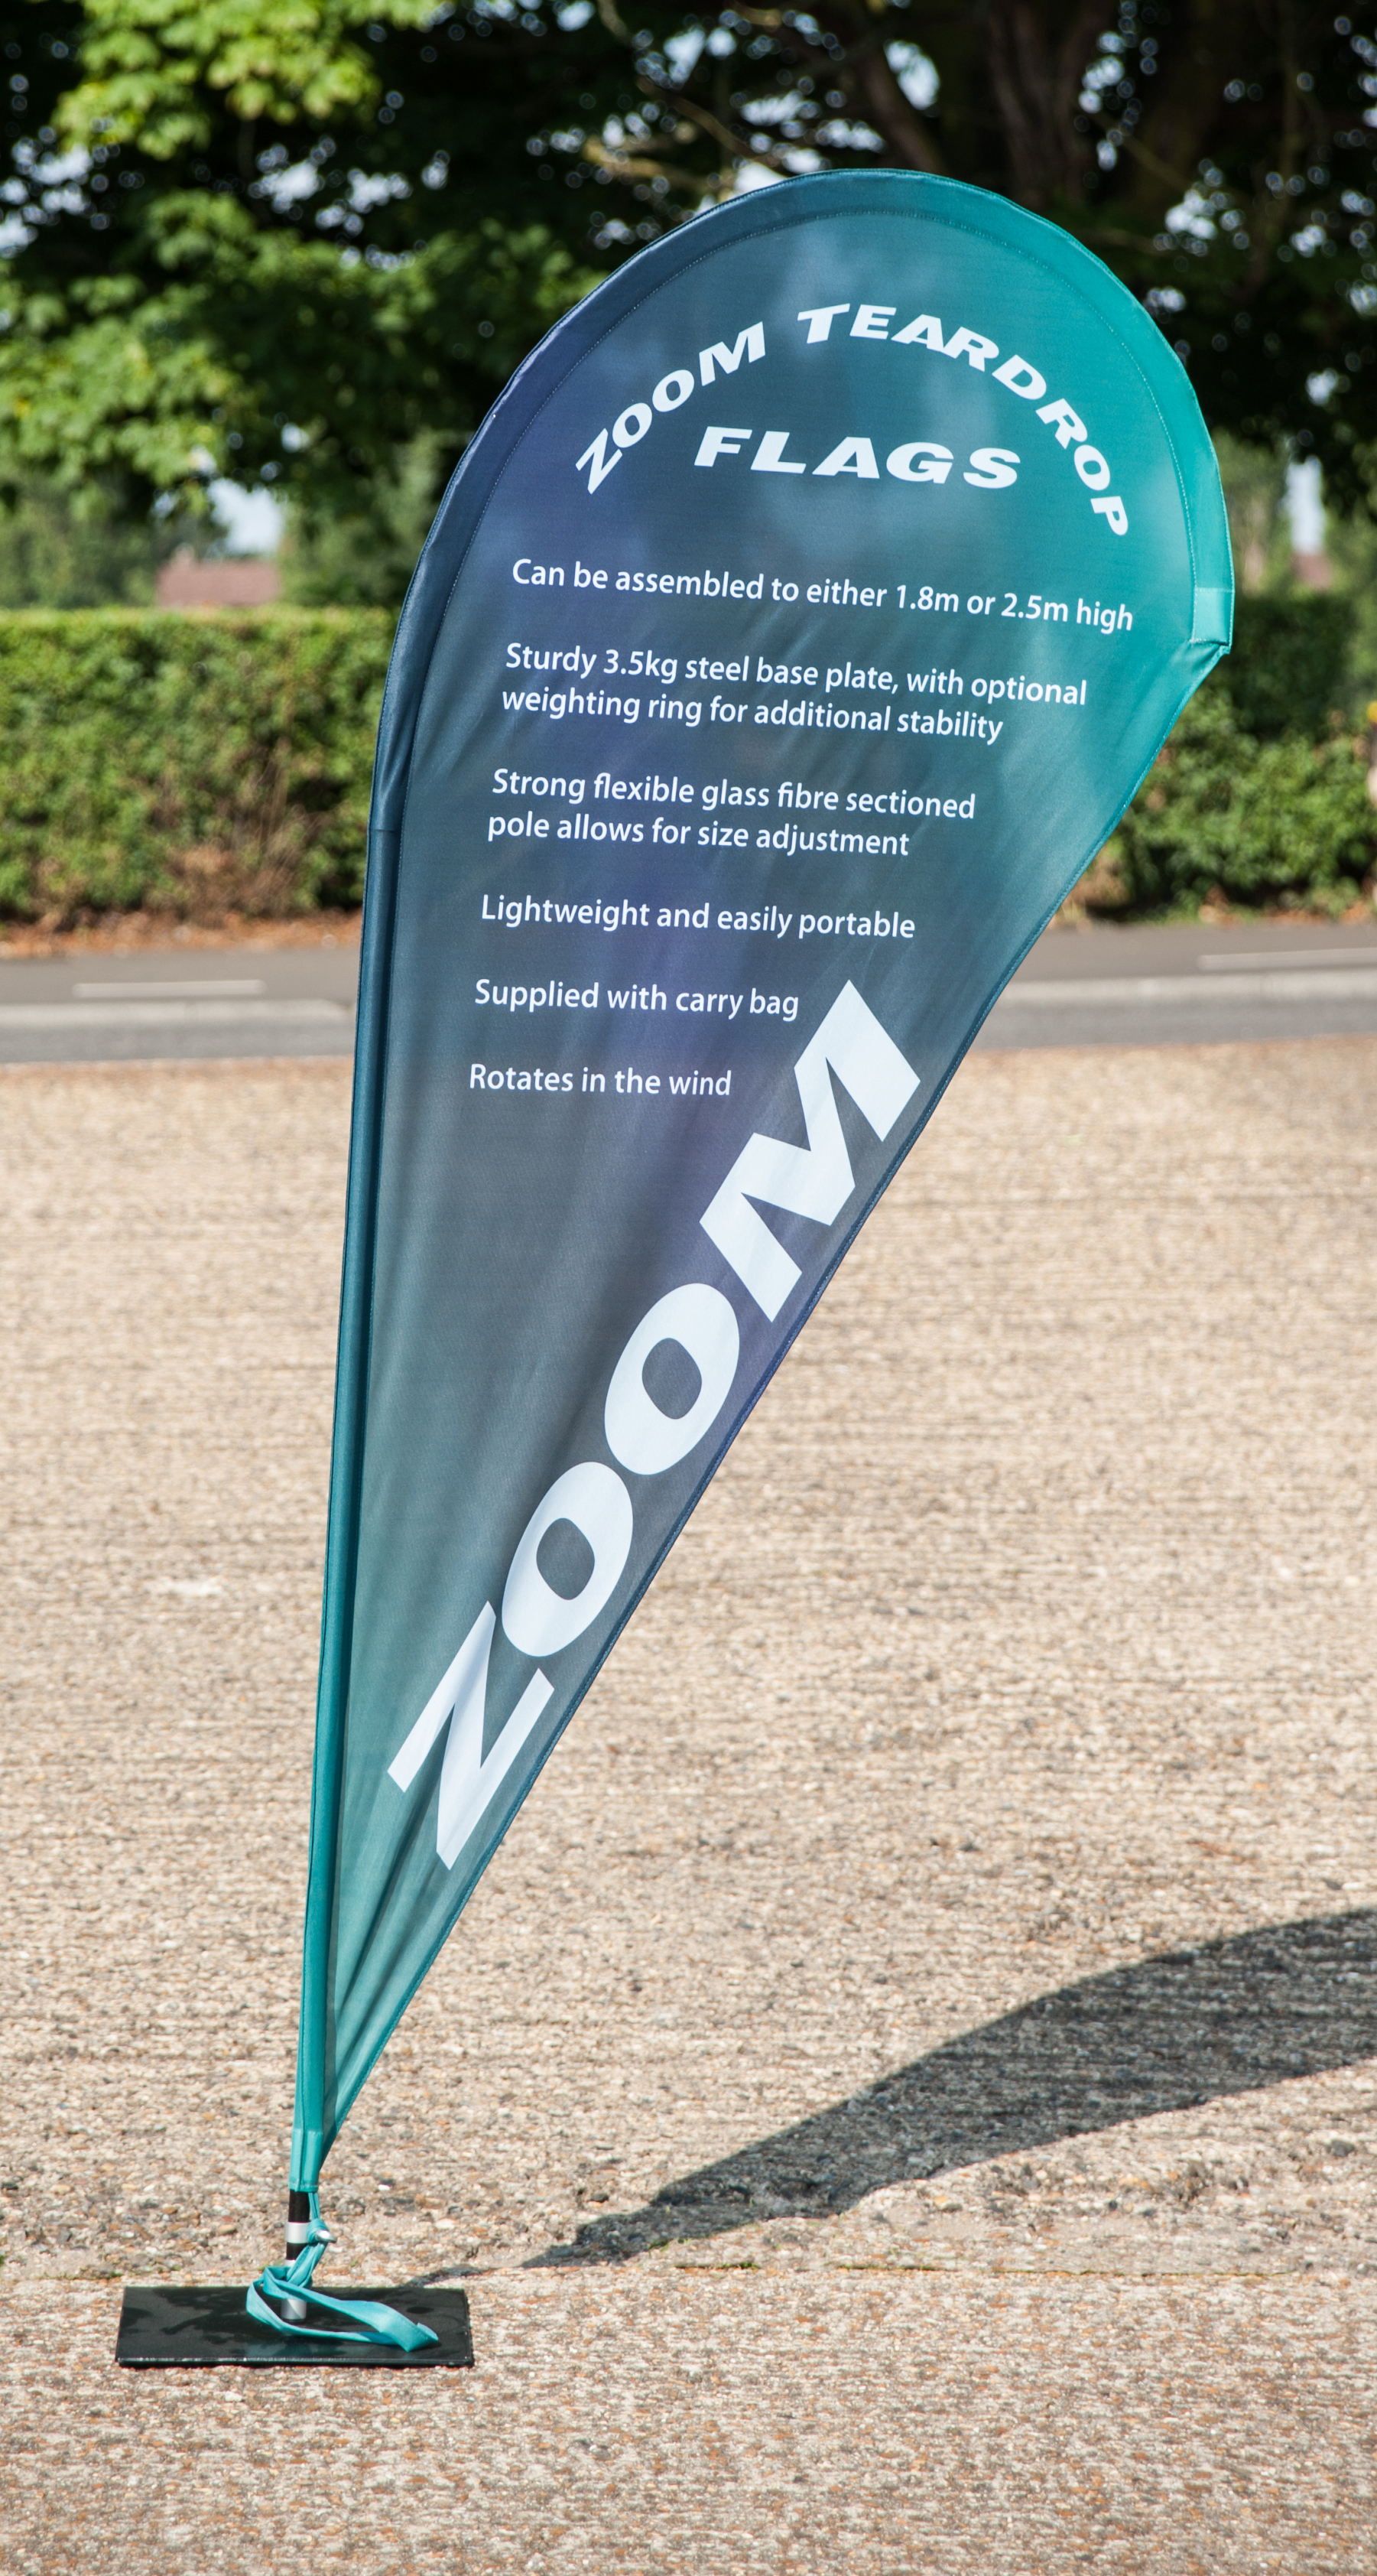 Zoom banner flags